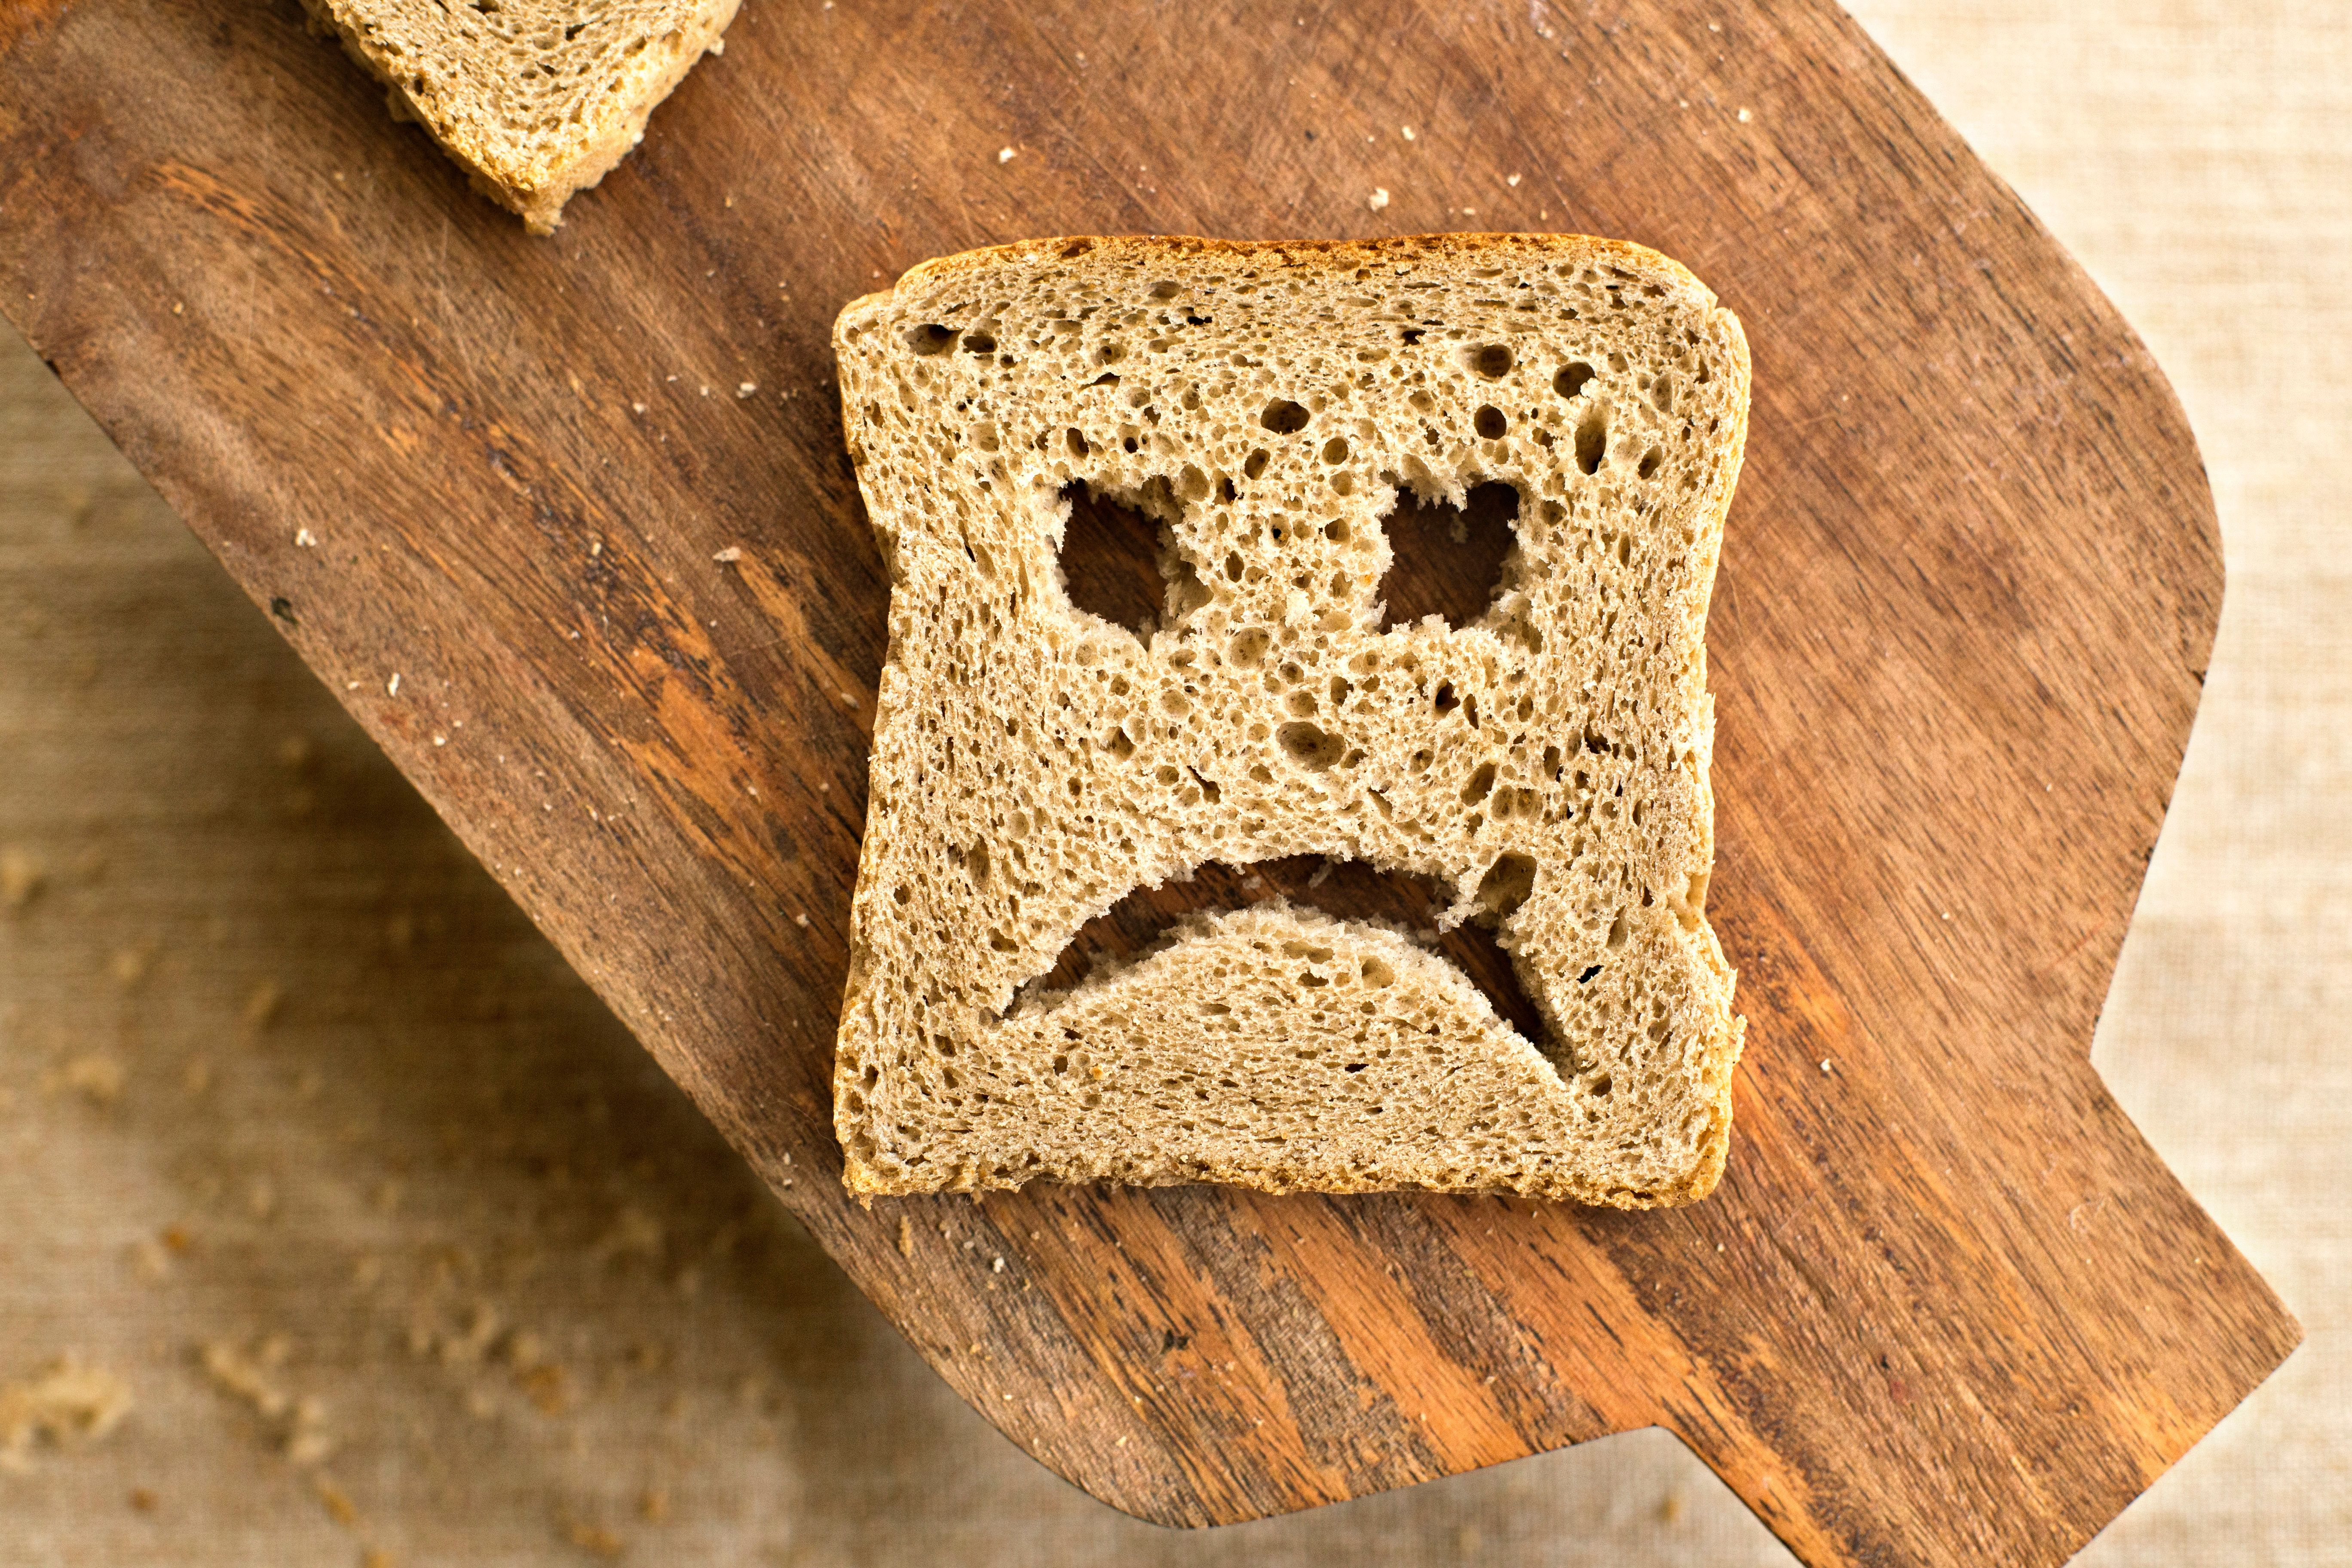 How To Tell If You Have Celiac Disease Or A Gluten